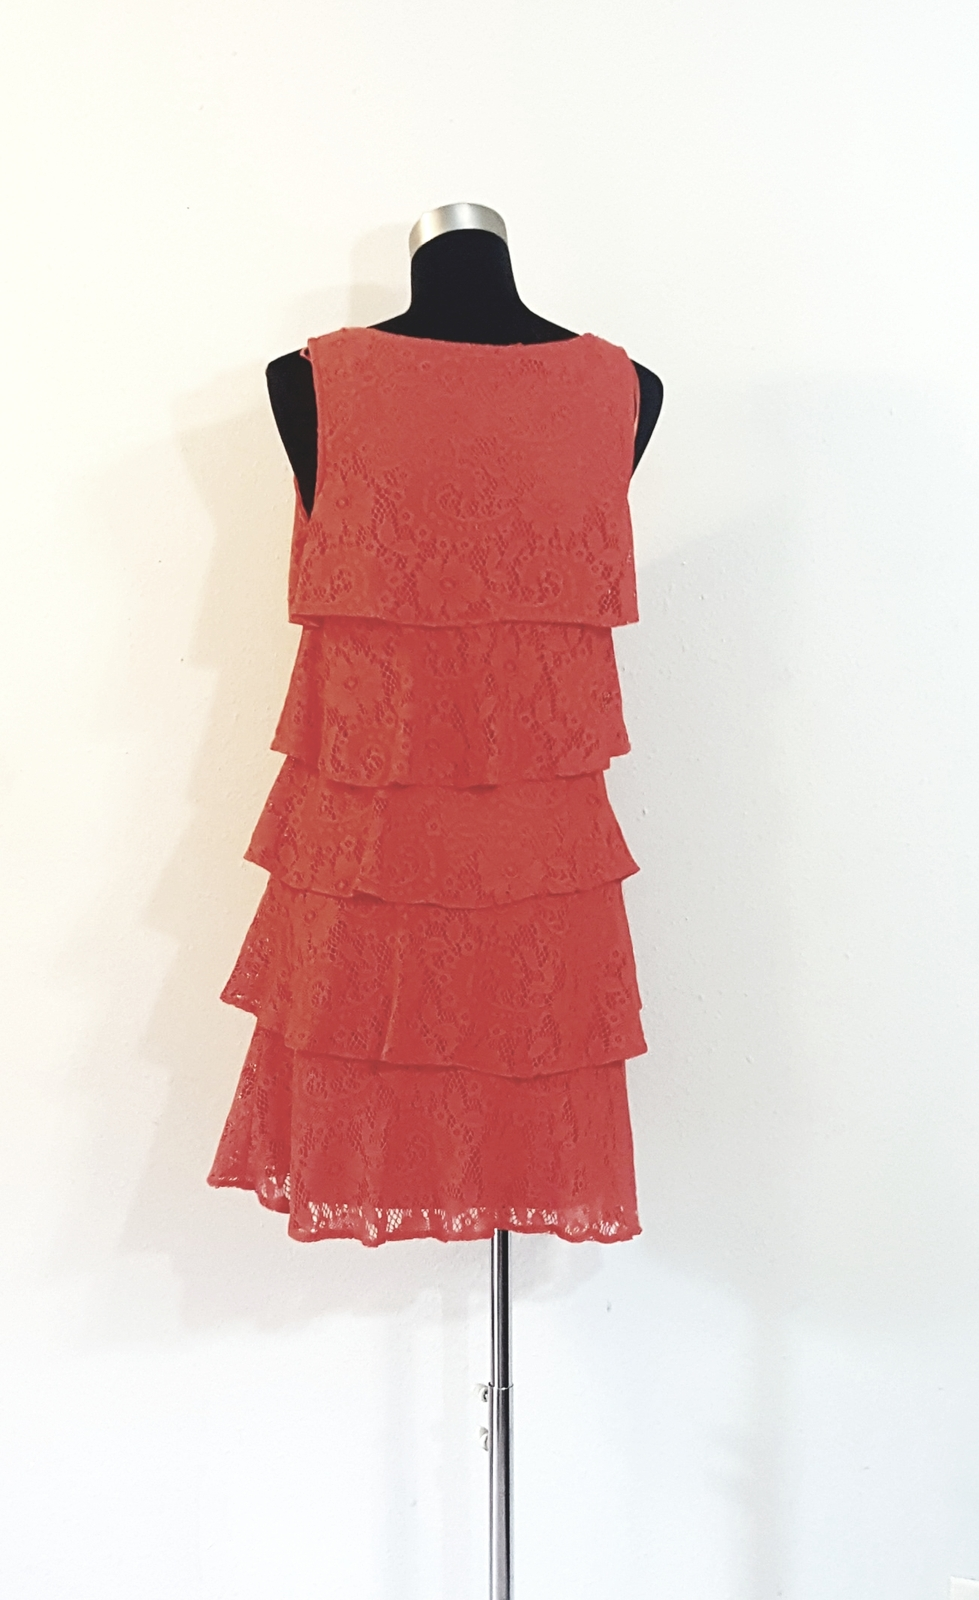 ND New Directions Tiered Lace Sleeveless Dress Size 4 Womens